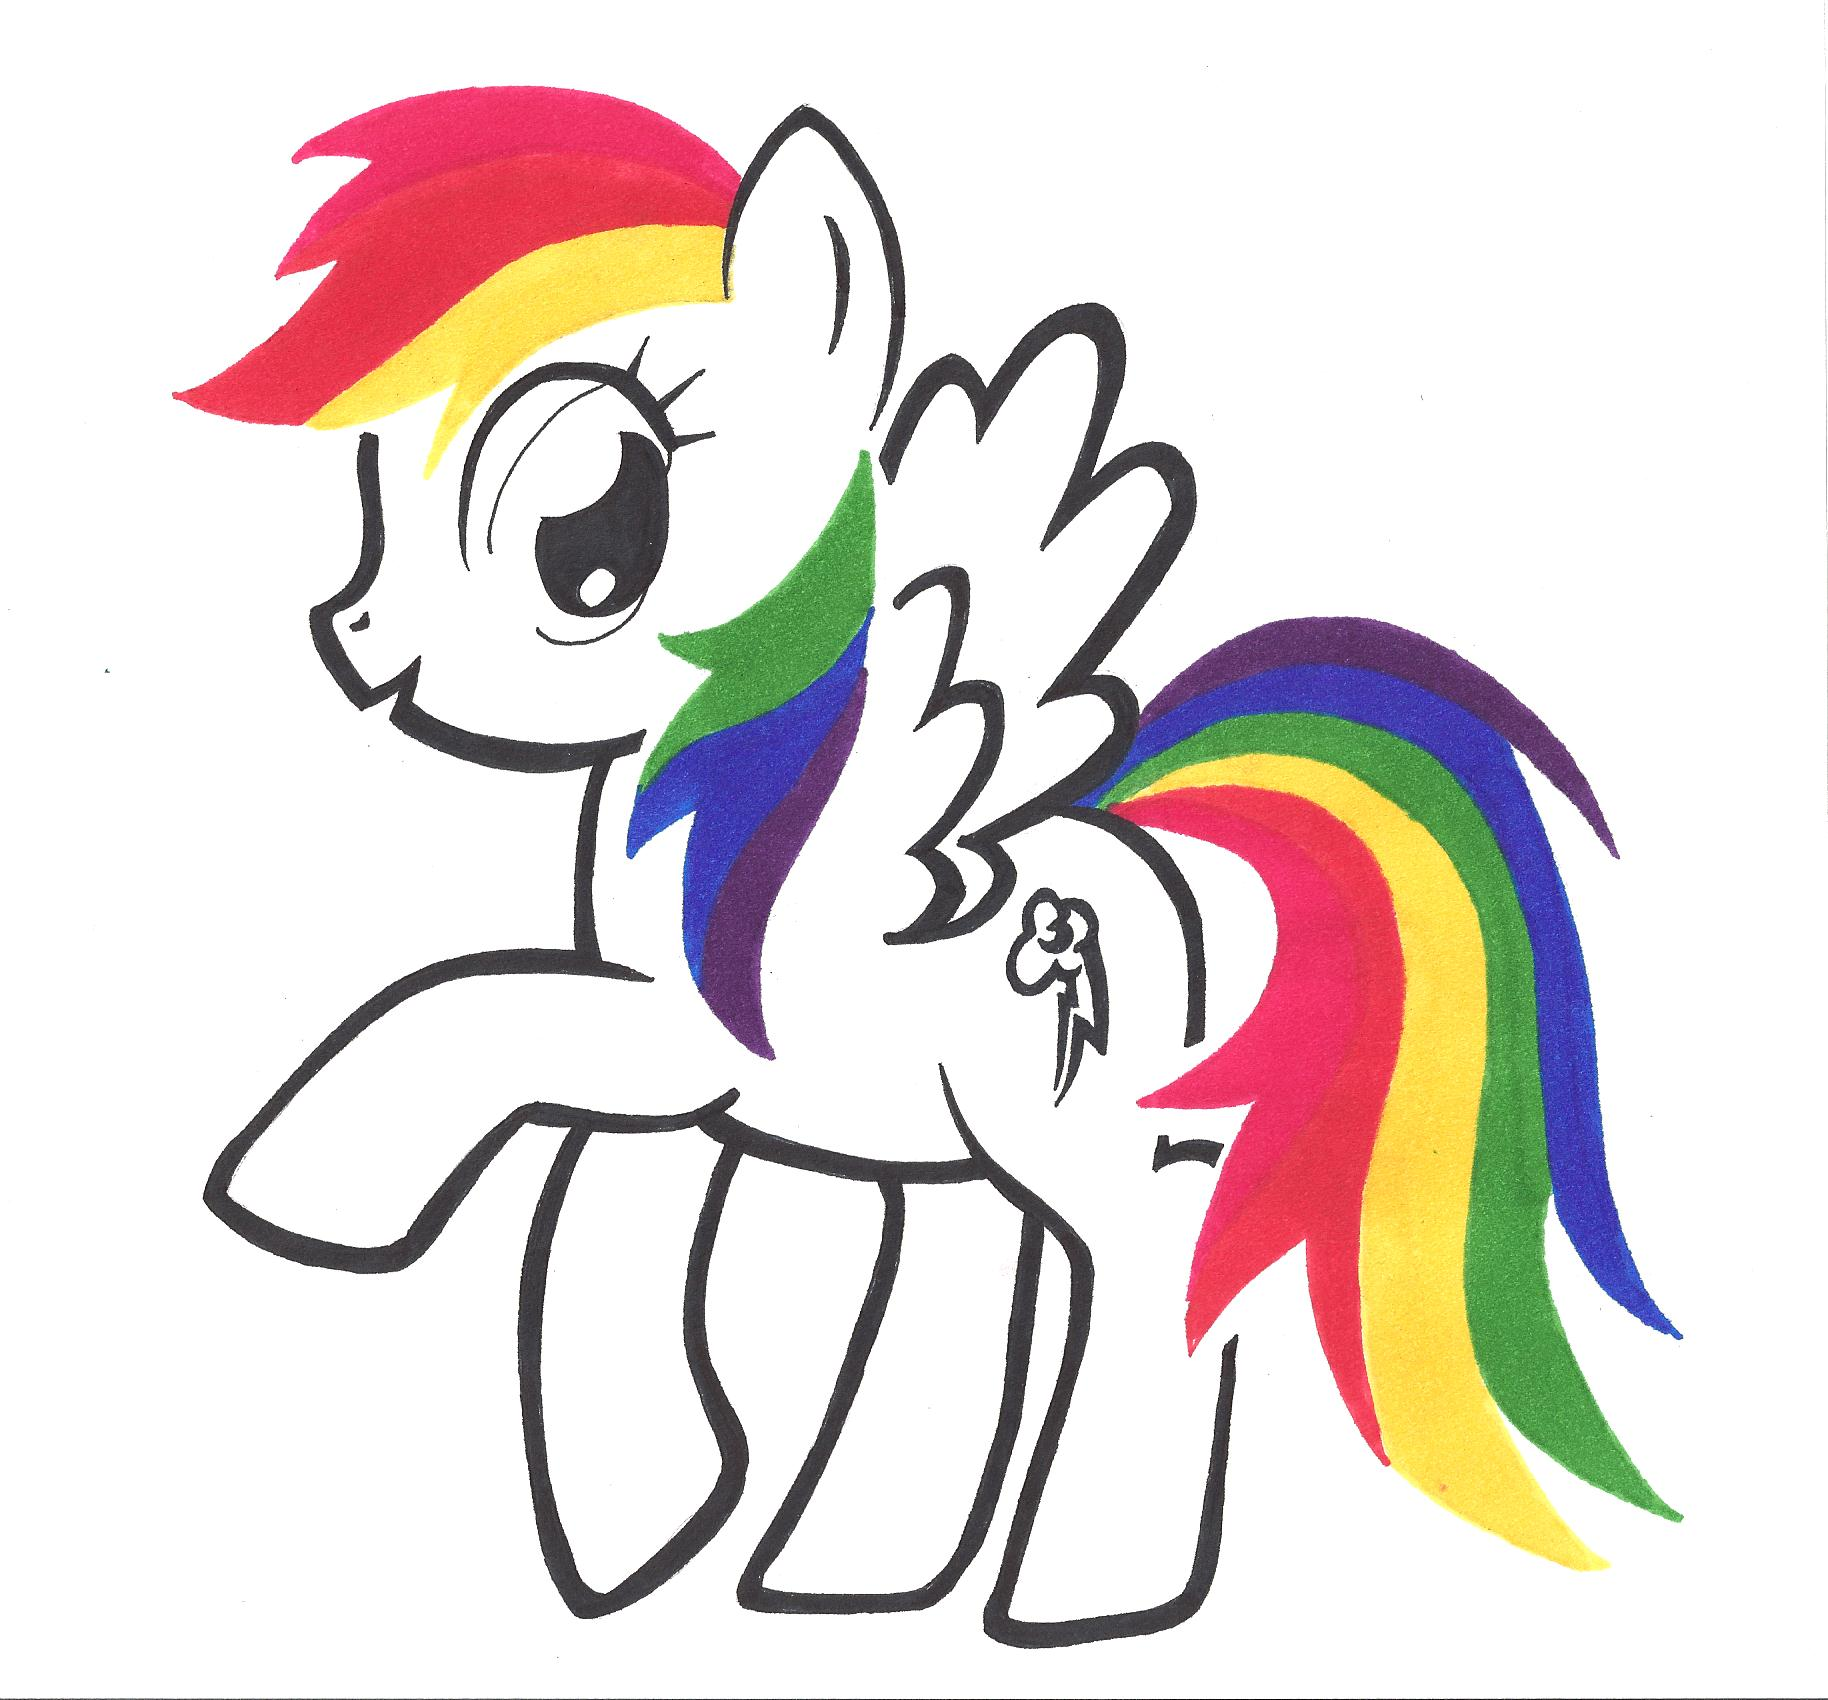 Rainbow dash by hitaiwoaisenai on deviantart for Rainbow dash cake template